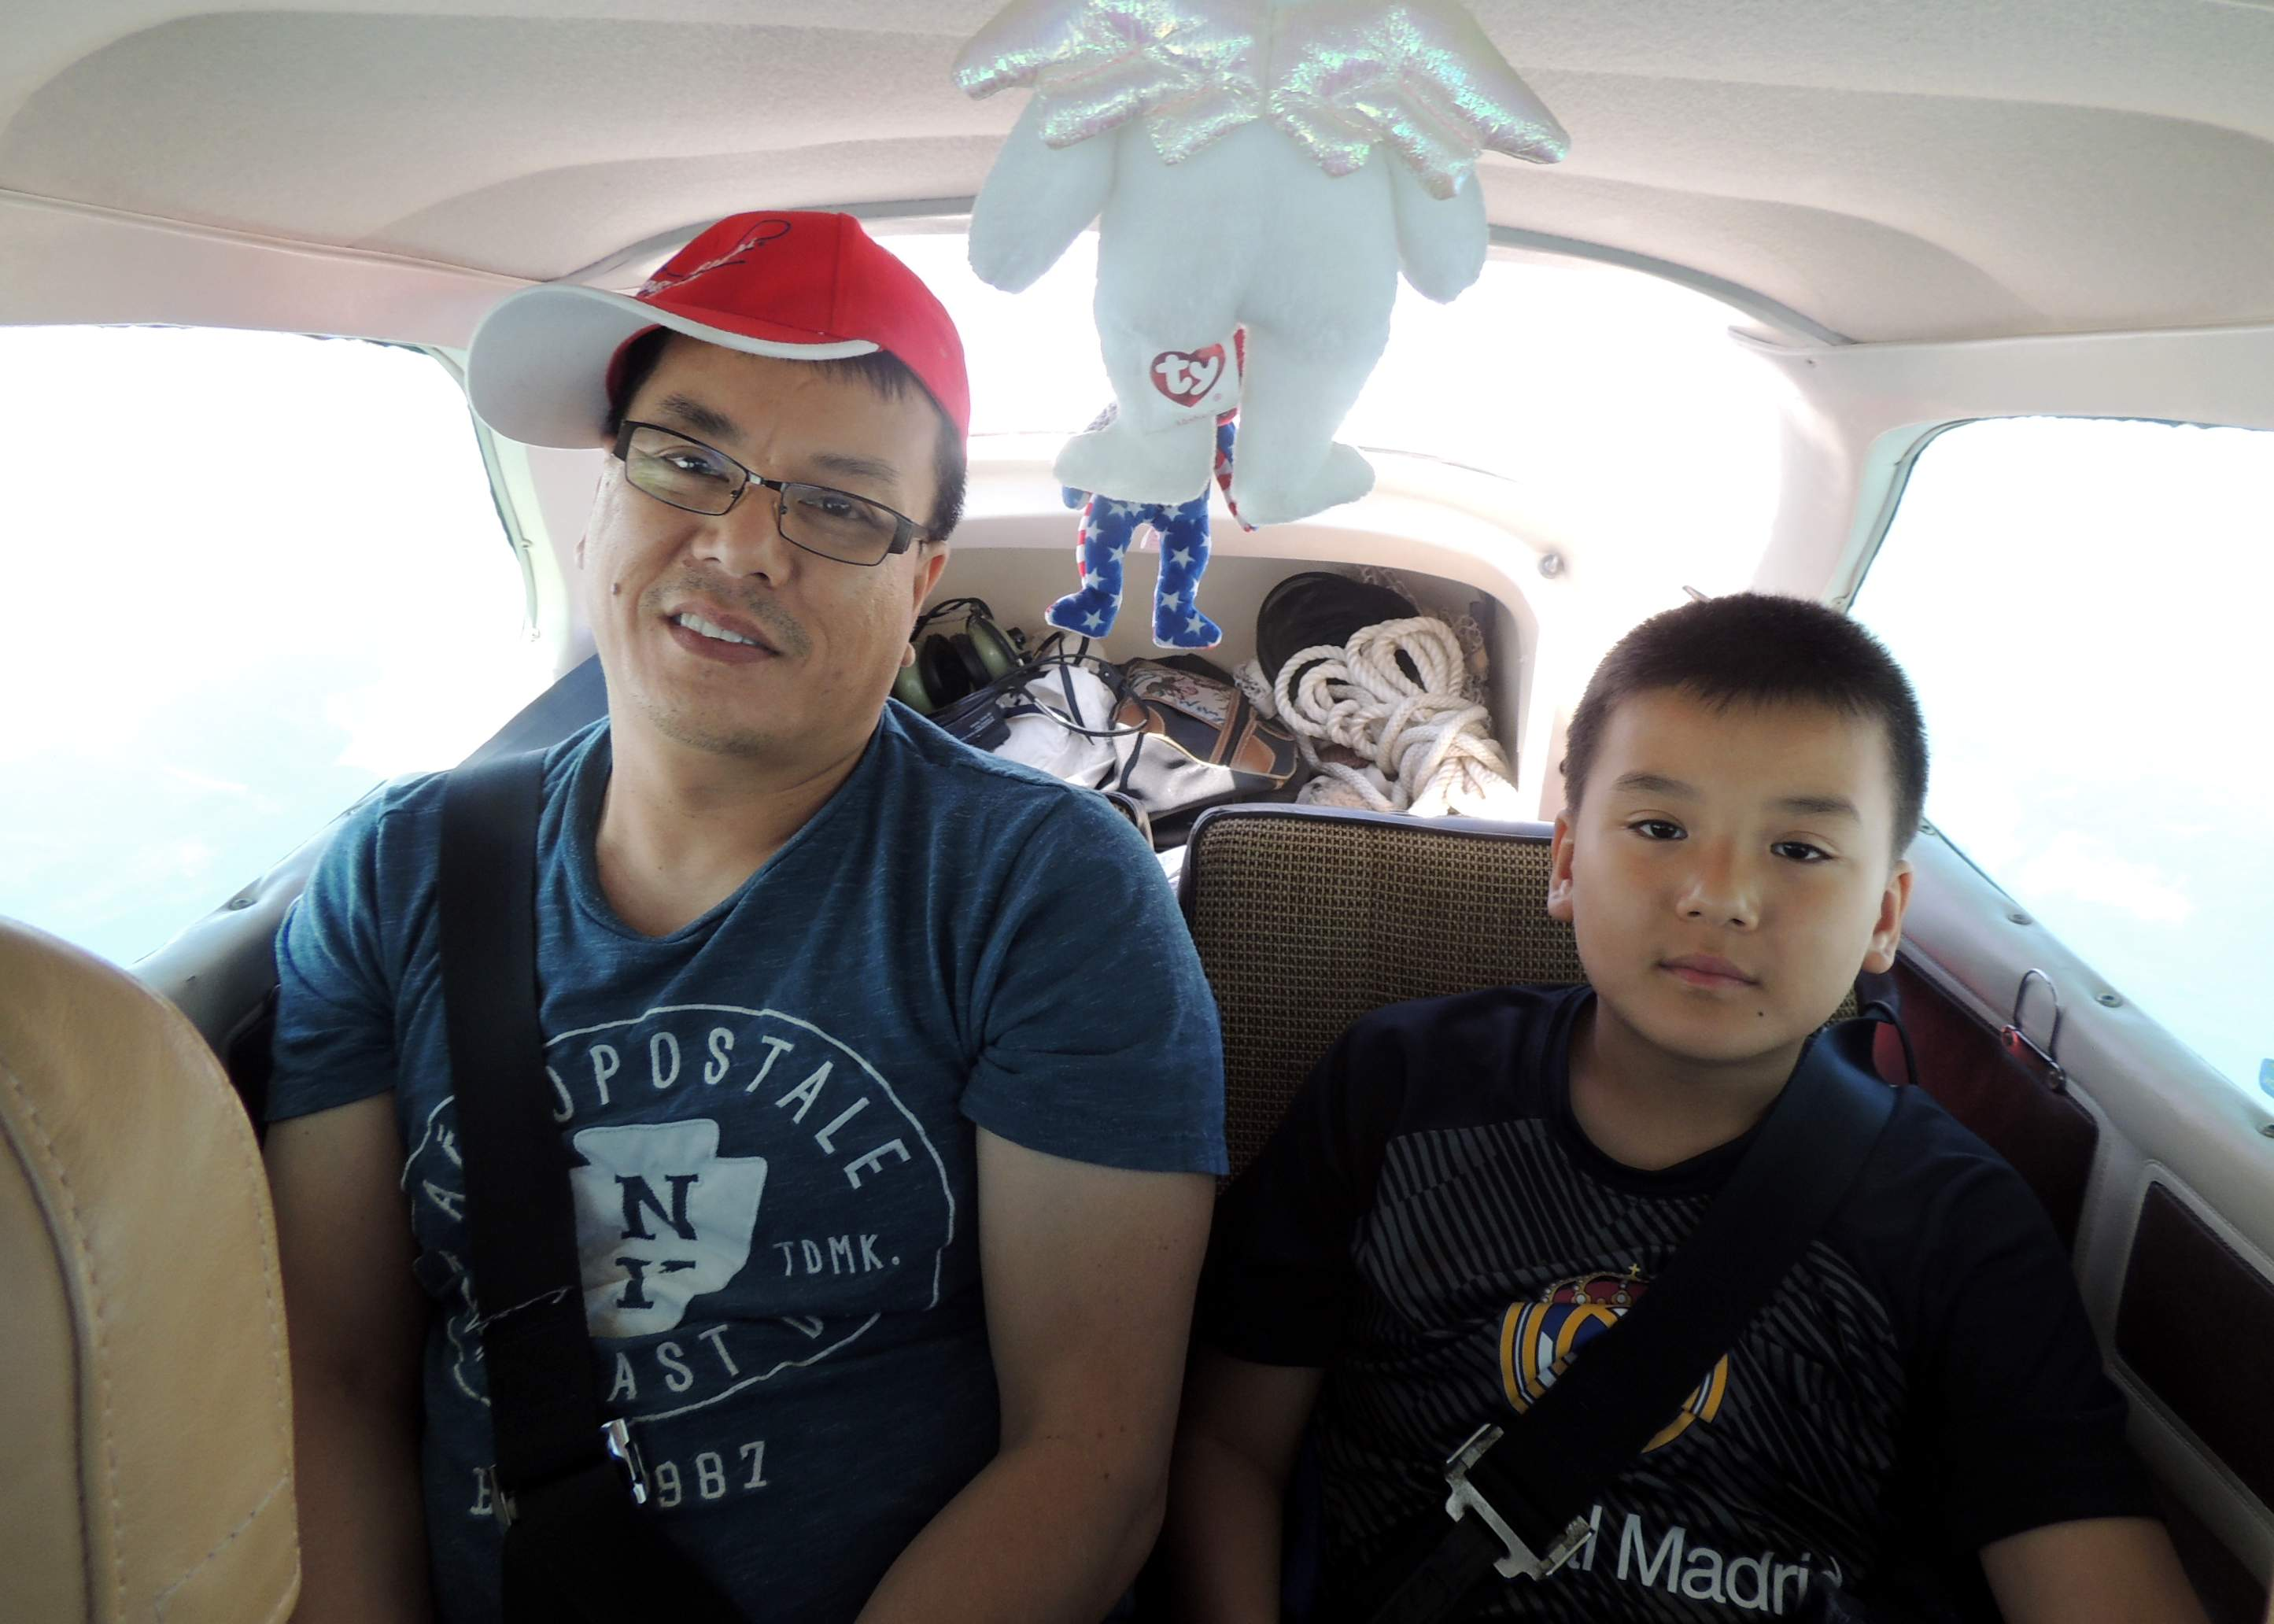 On our way to Manassas VA with Sam and his dad James